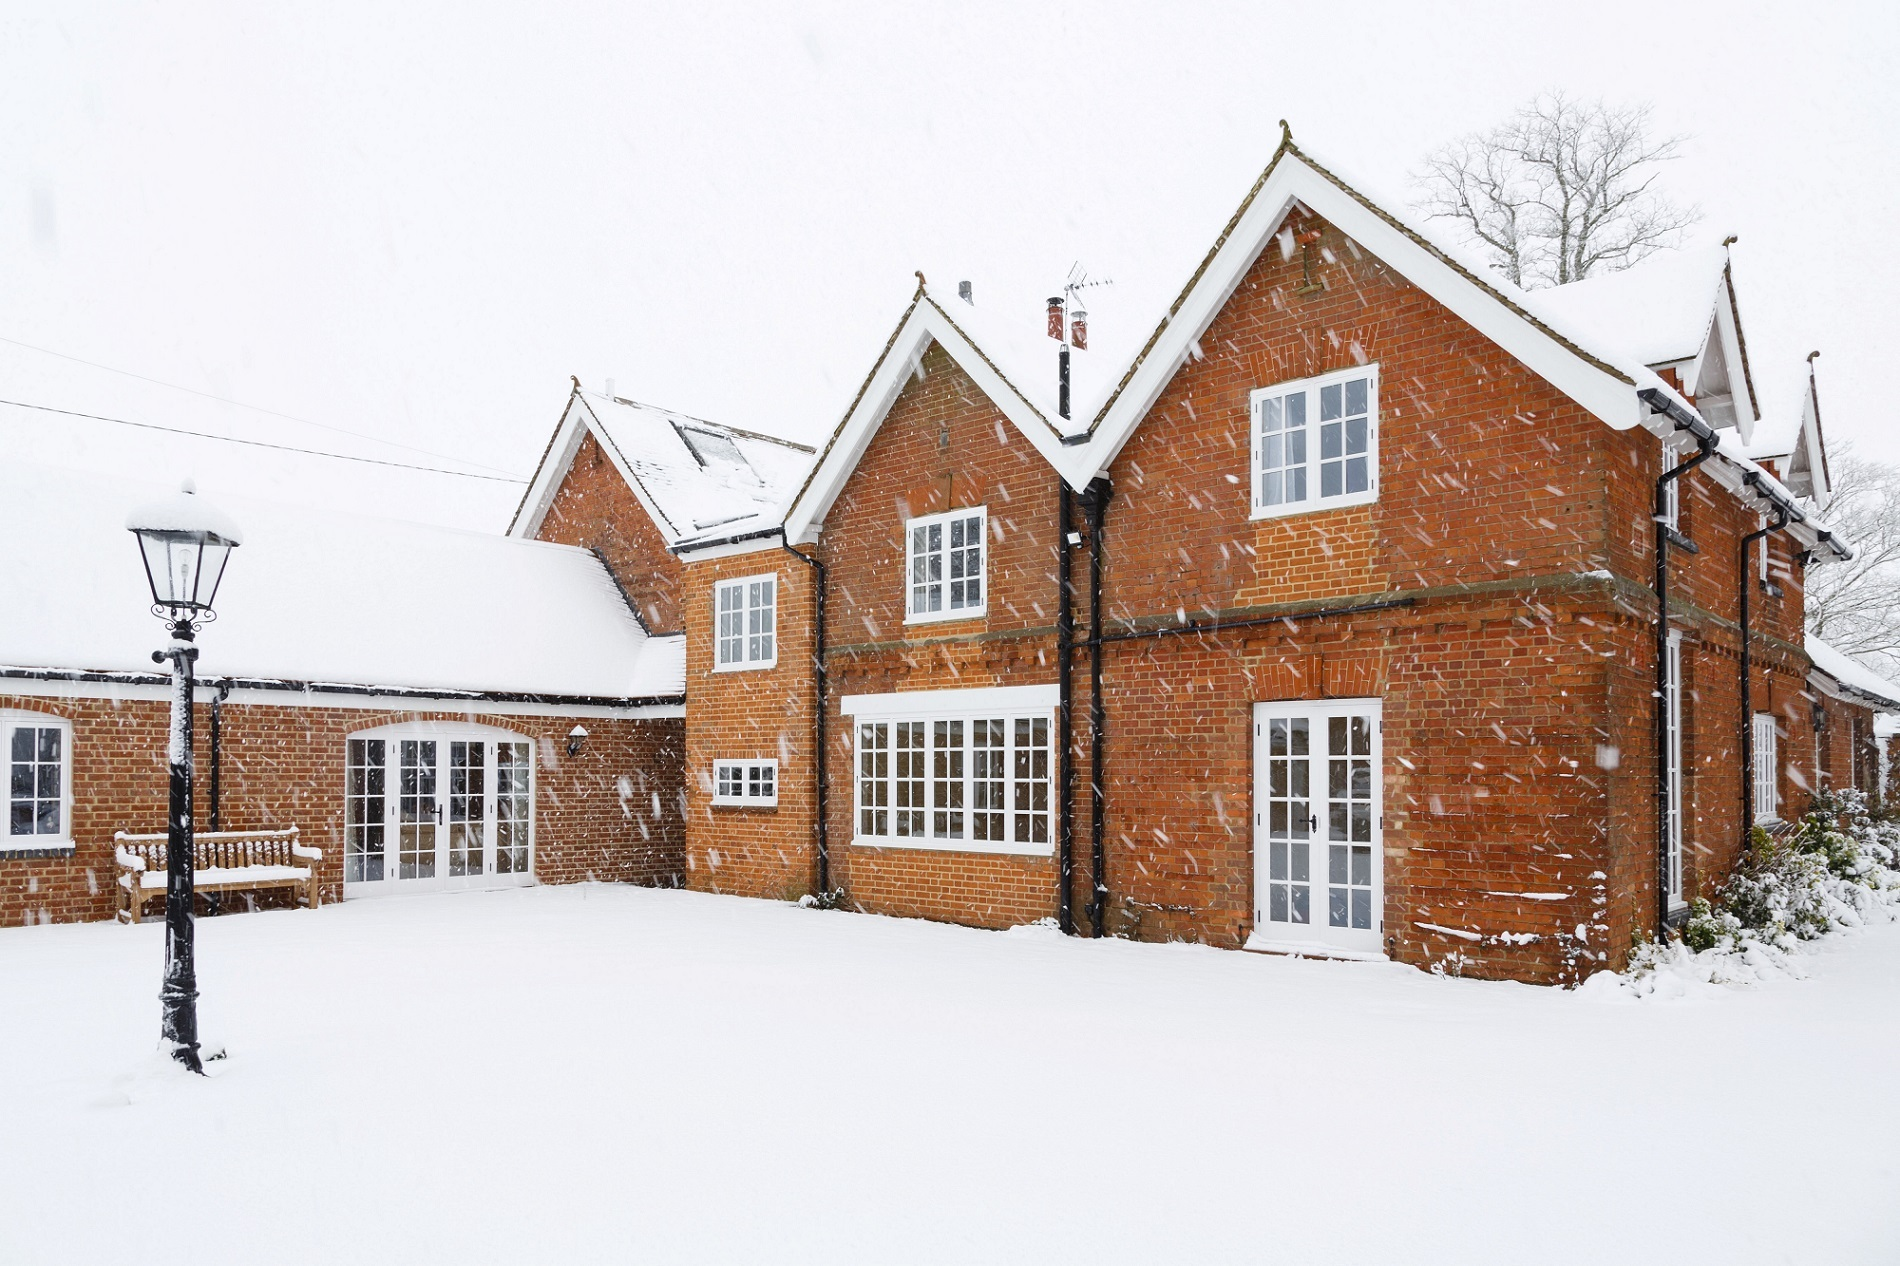 Winter is coming: Top property maintenance tips to protect your home